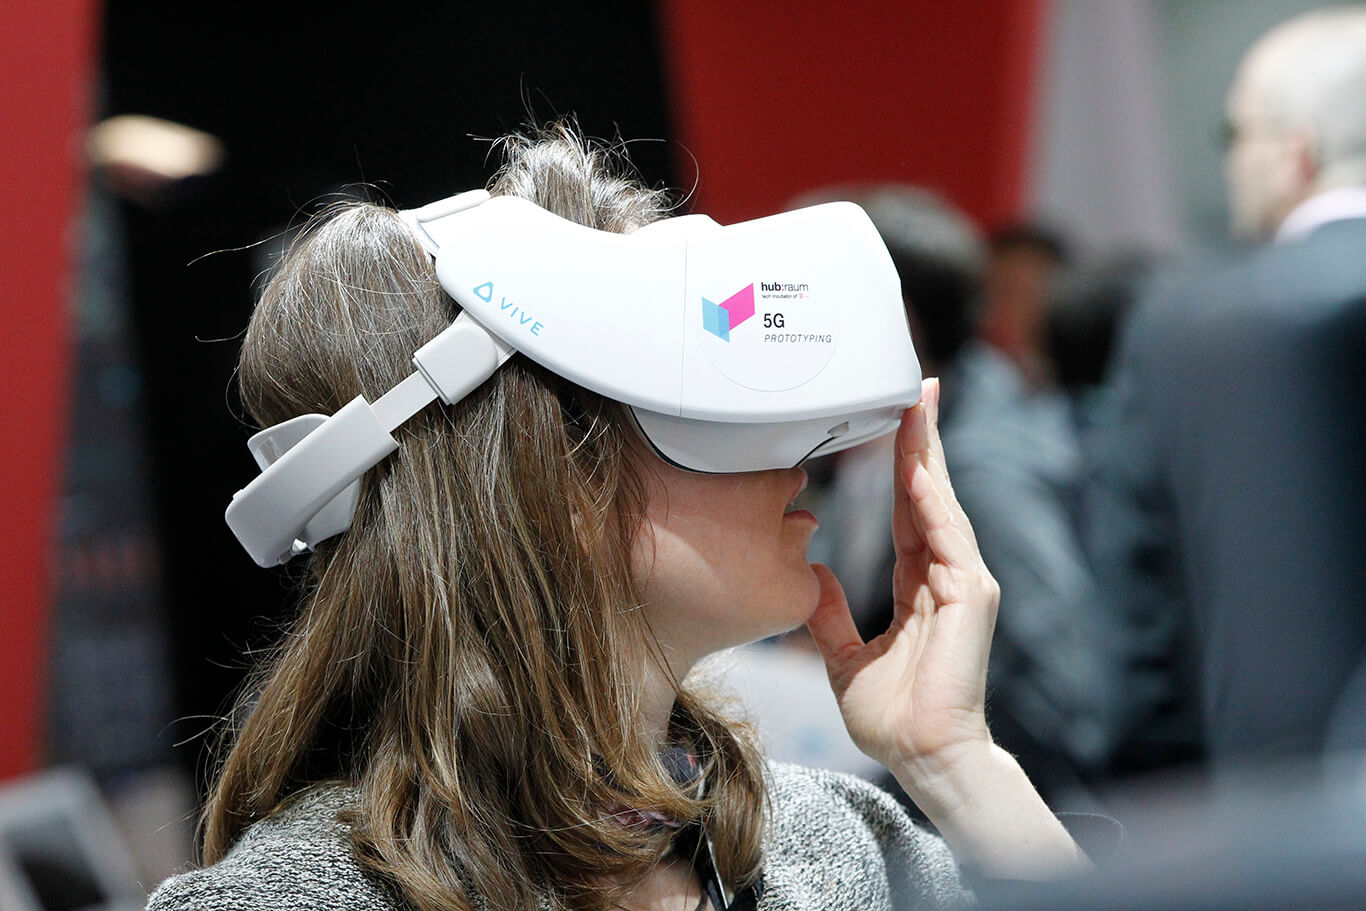 The latest VR technologies at Mobile World Congress 2019